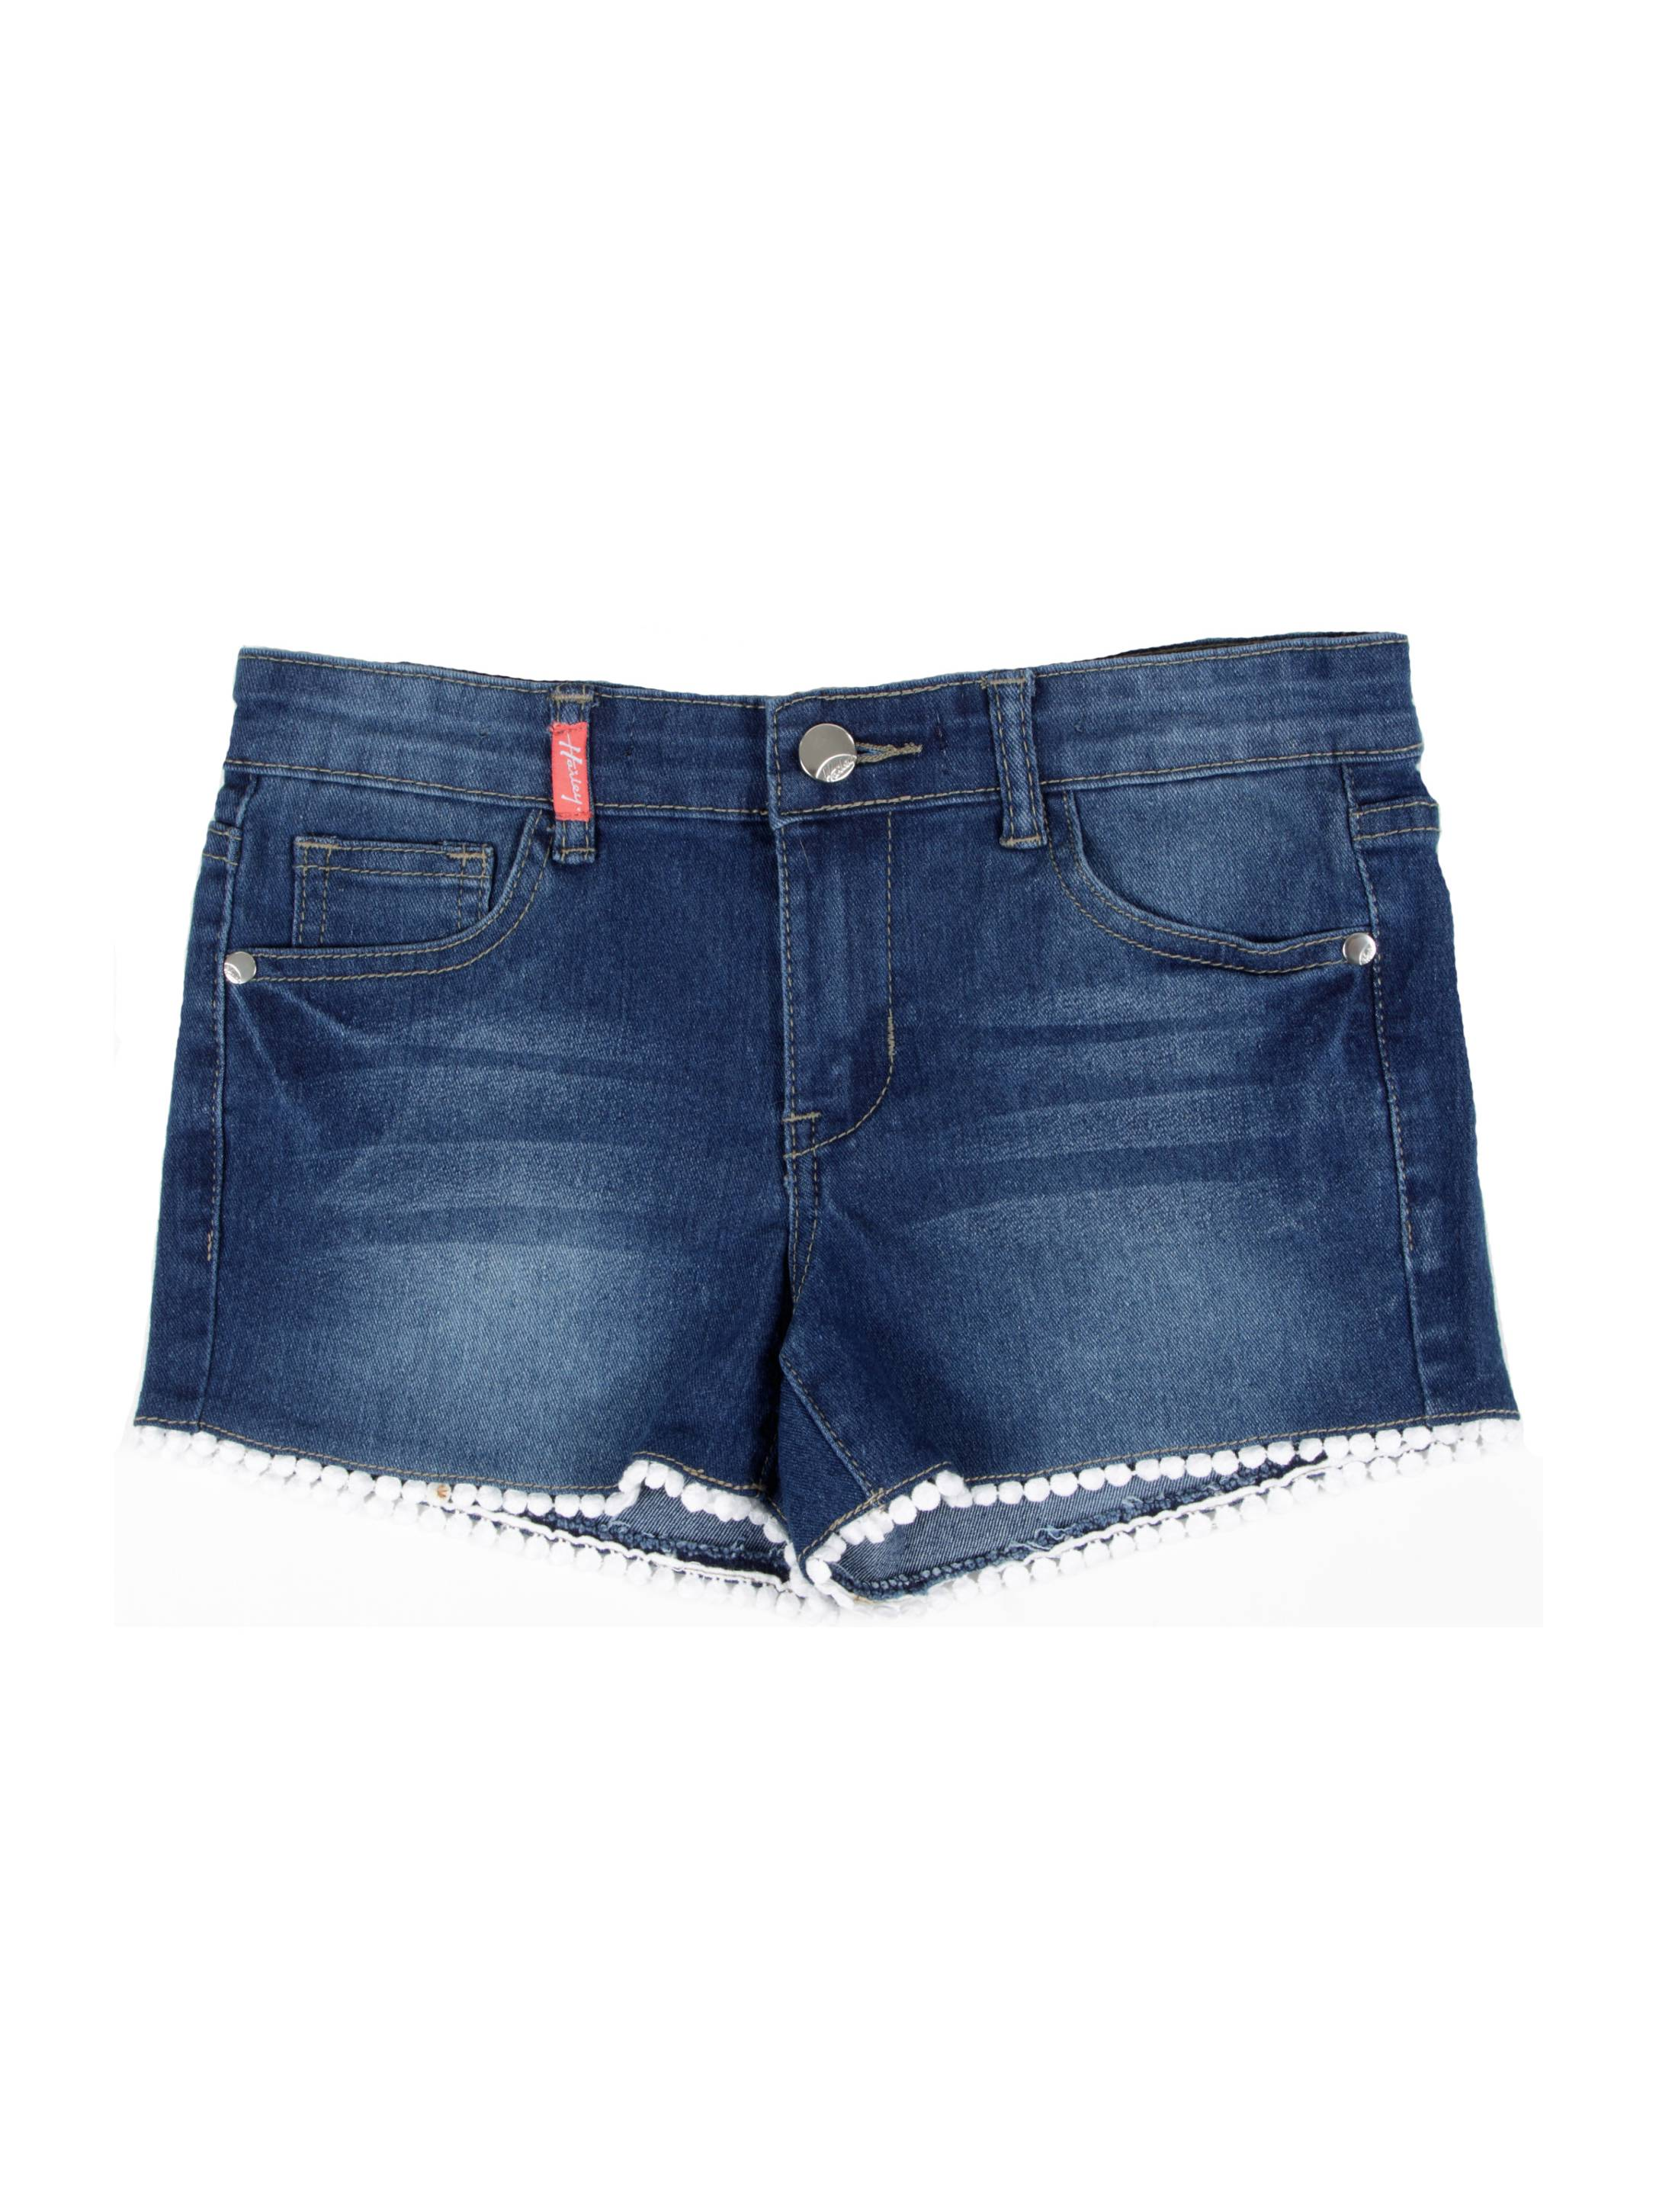 9H072(SH) - Girls Stretch 5 Pockets Premium Shorts with Laced Hem